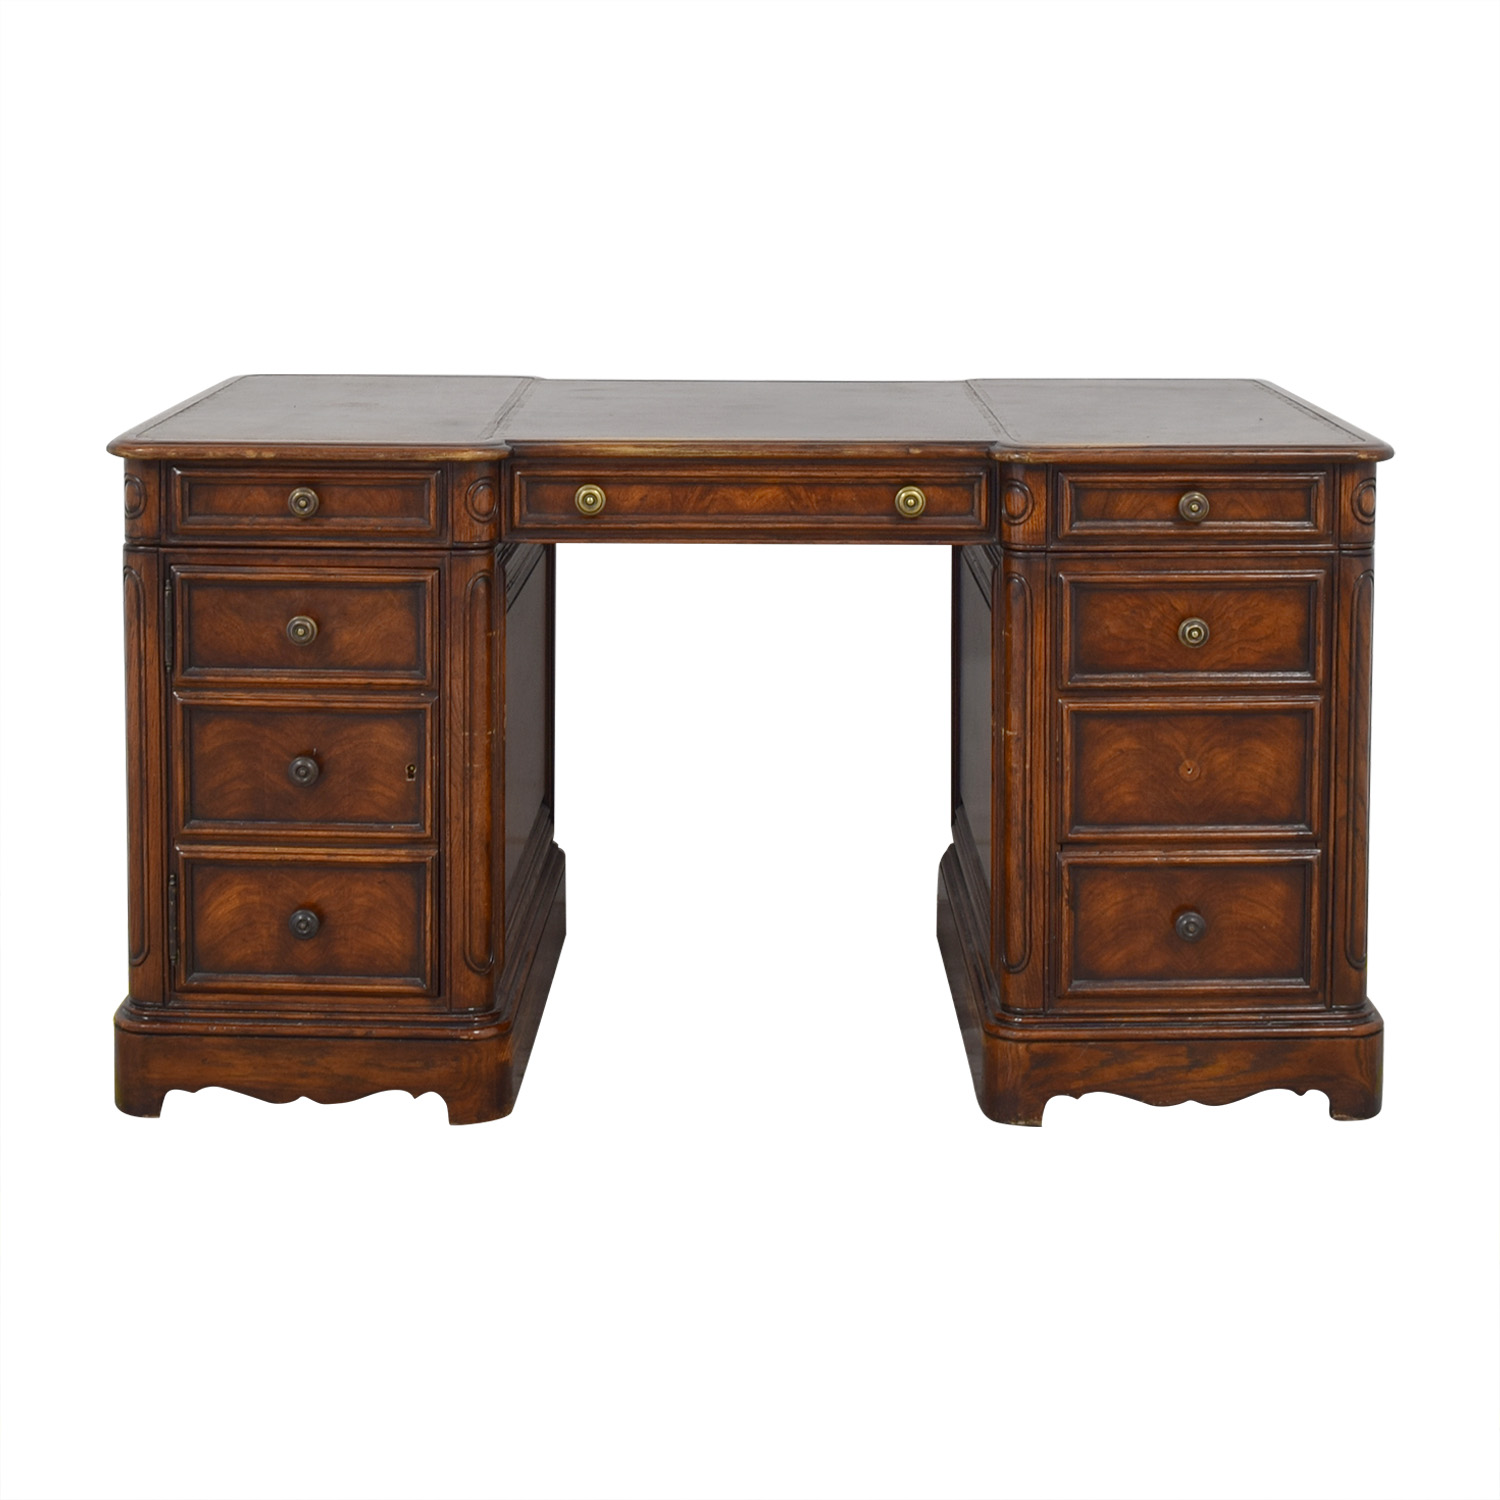 buy ABC Carpet & Home ABC Carpet & Home Multi Drawer Desk online